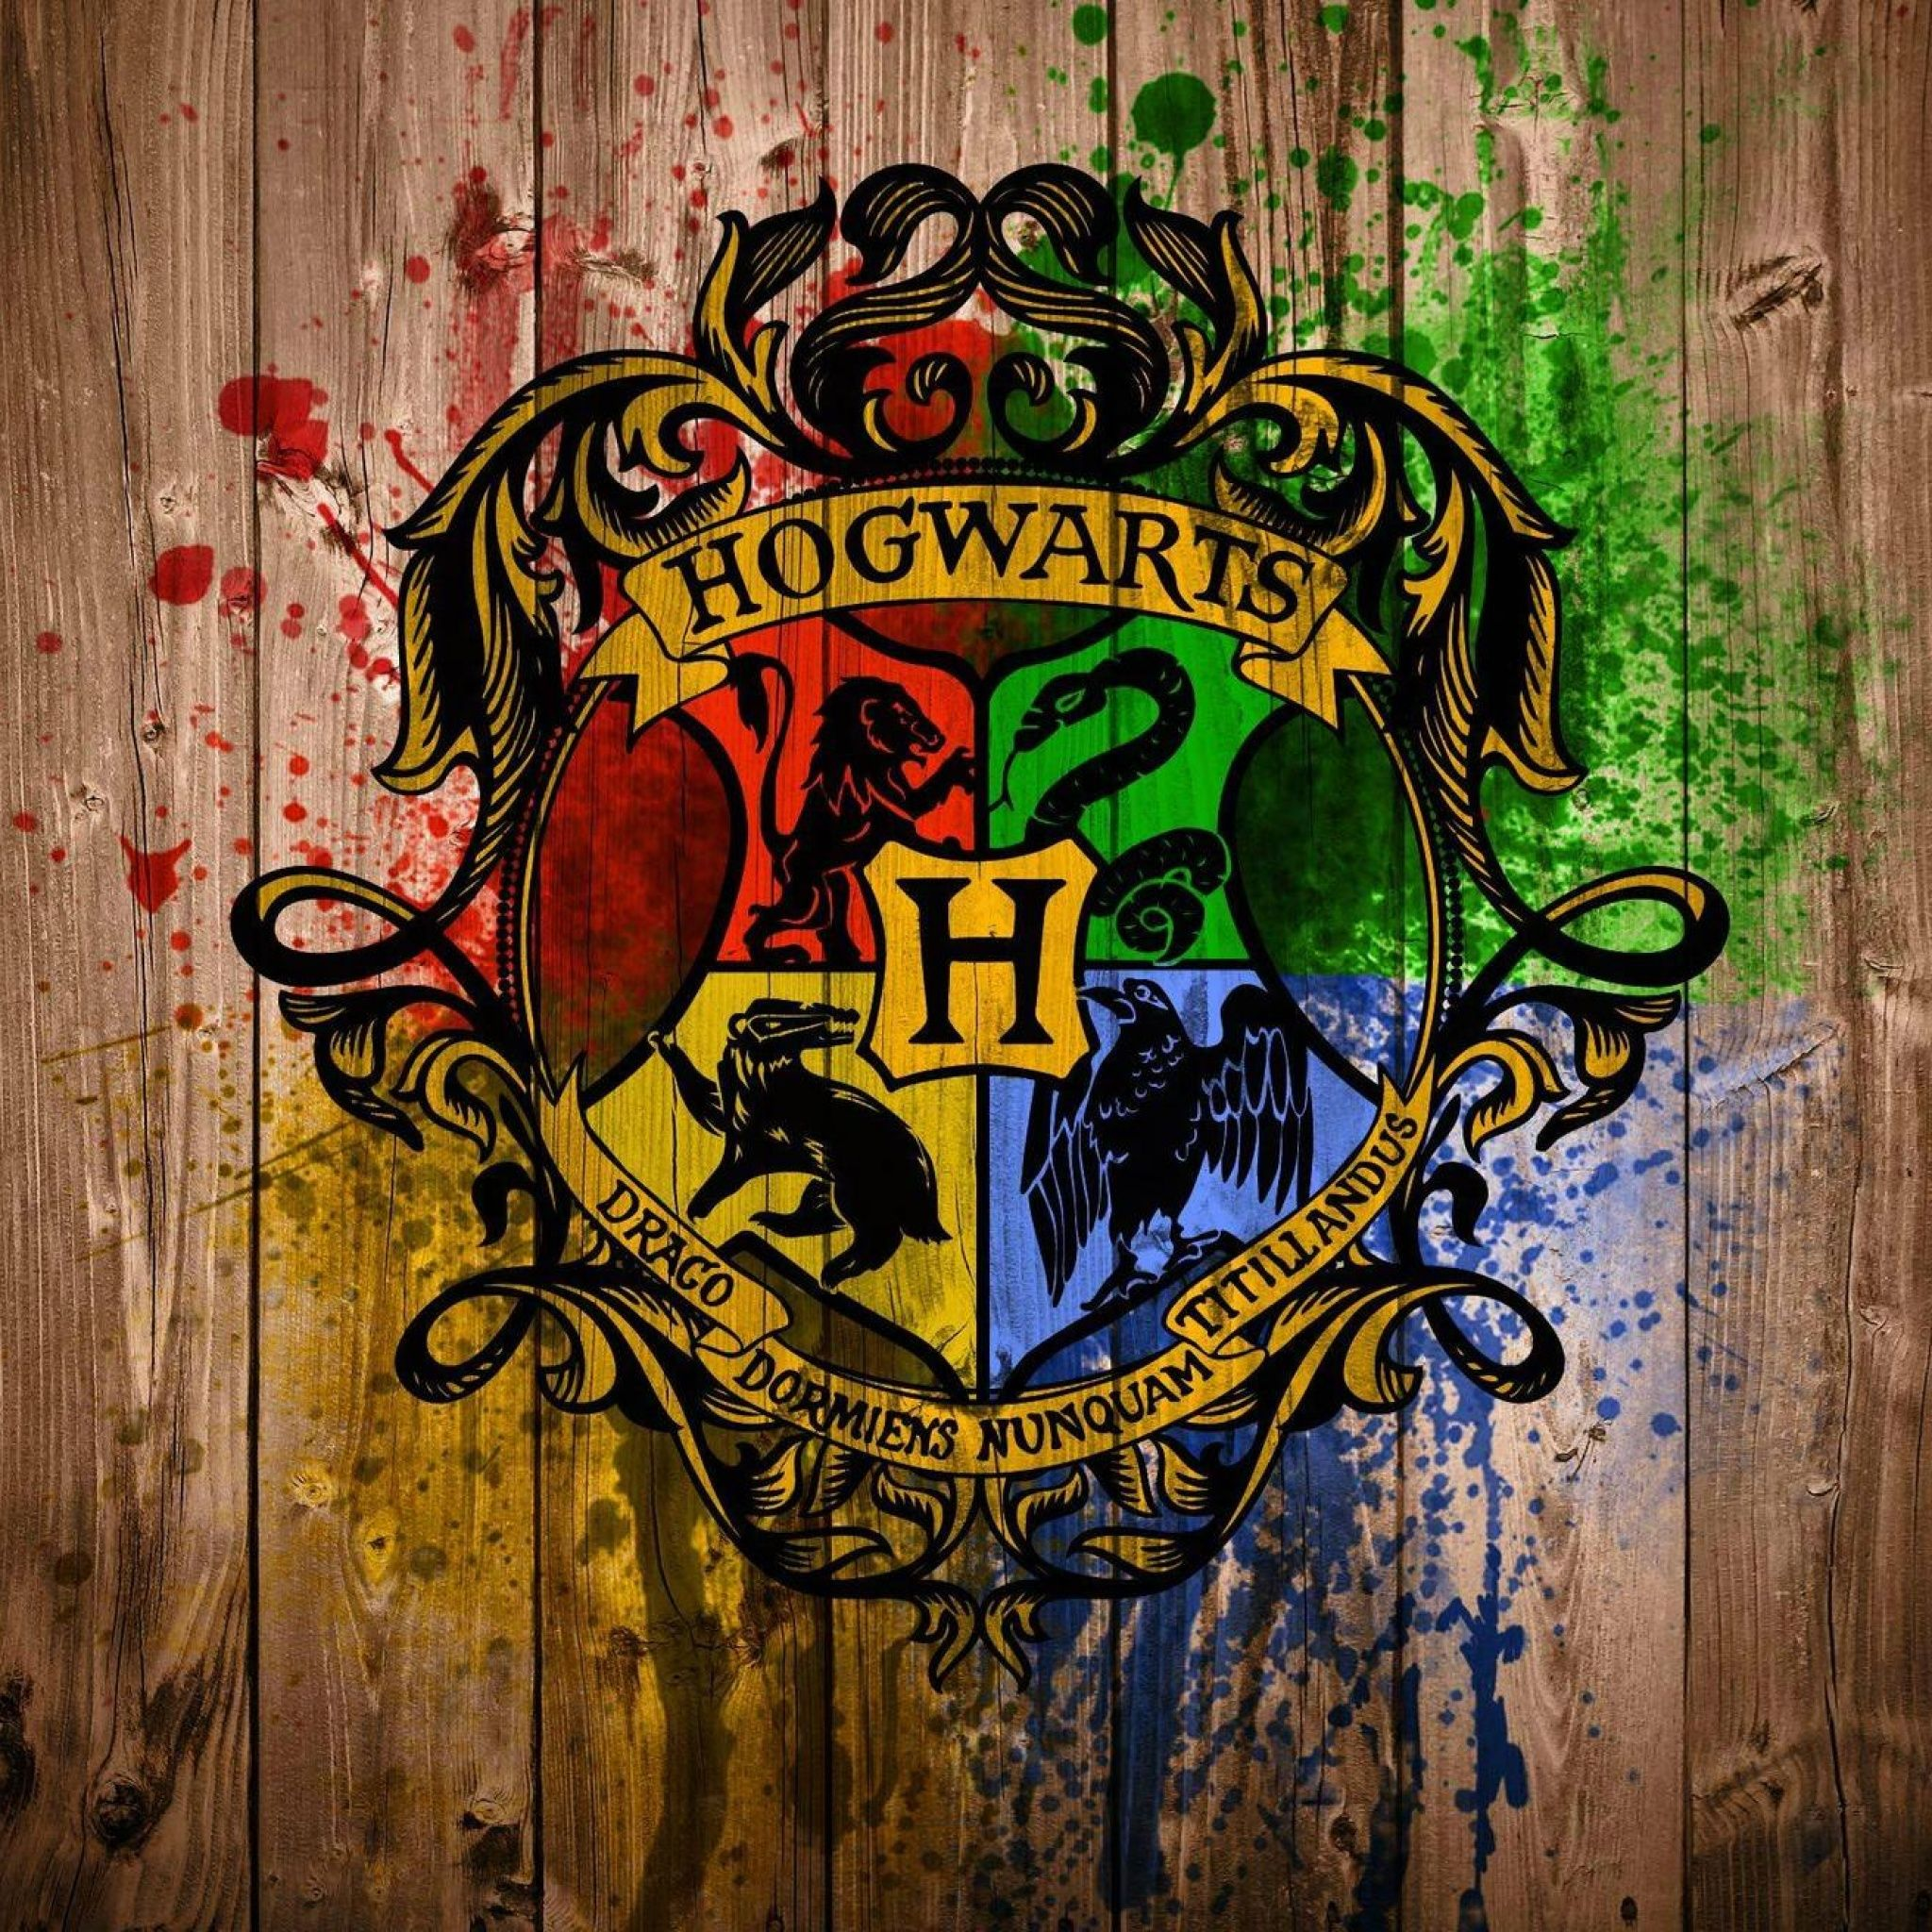 Popular Wallpaper Harry Potter Artwork - 77991371207ff3db12aae3d9dc2d66b3  Photograph_20487.jpg